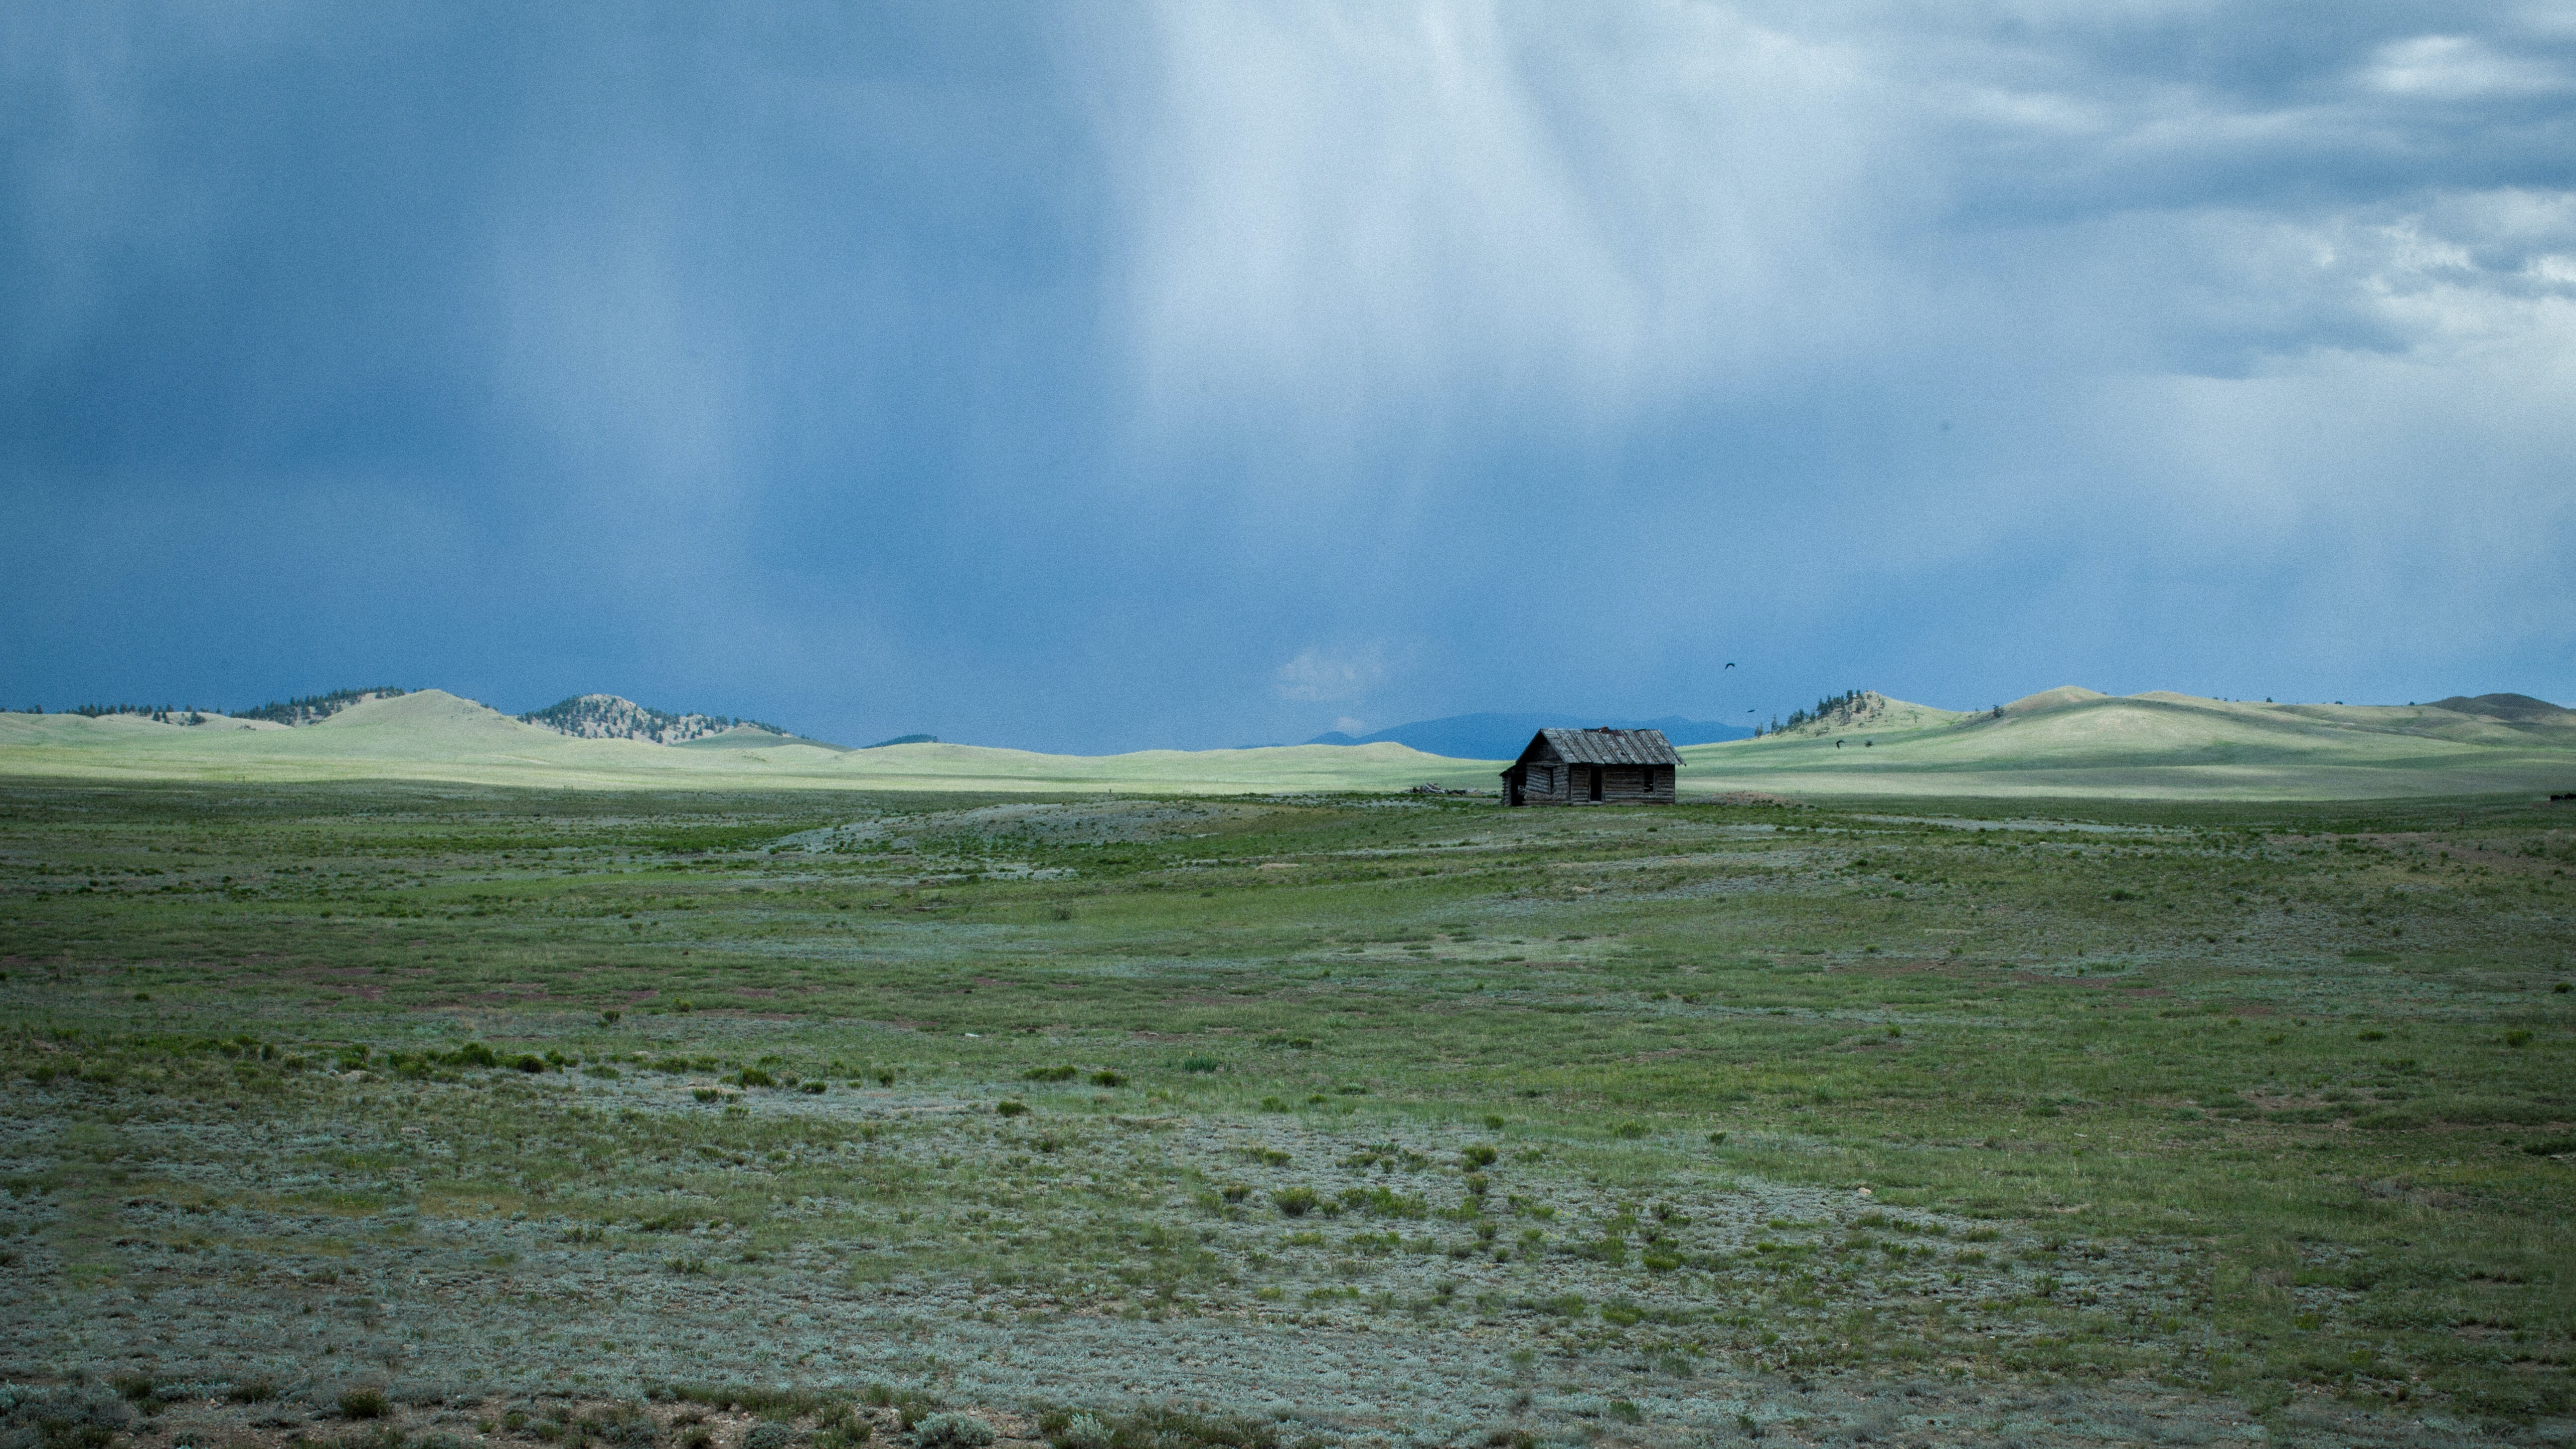 A bleak landscape with a wooden cabin on a desolate plain